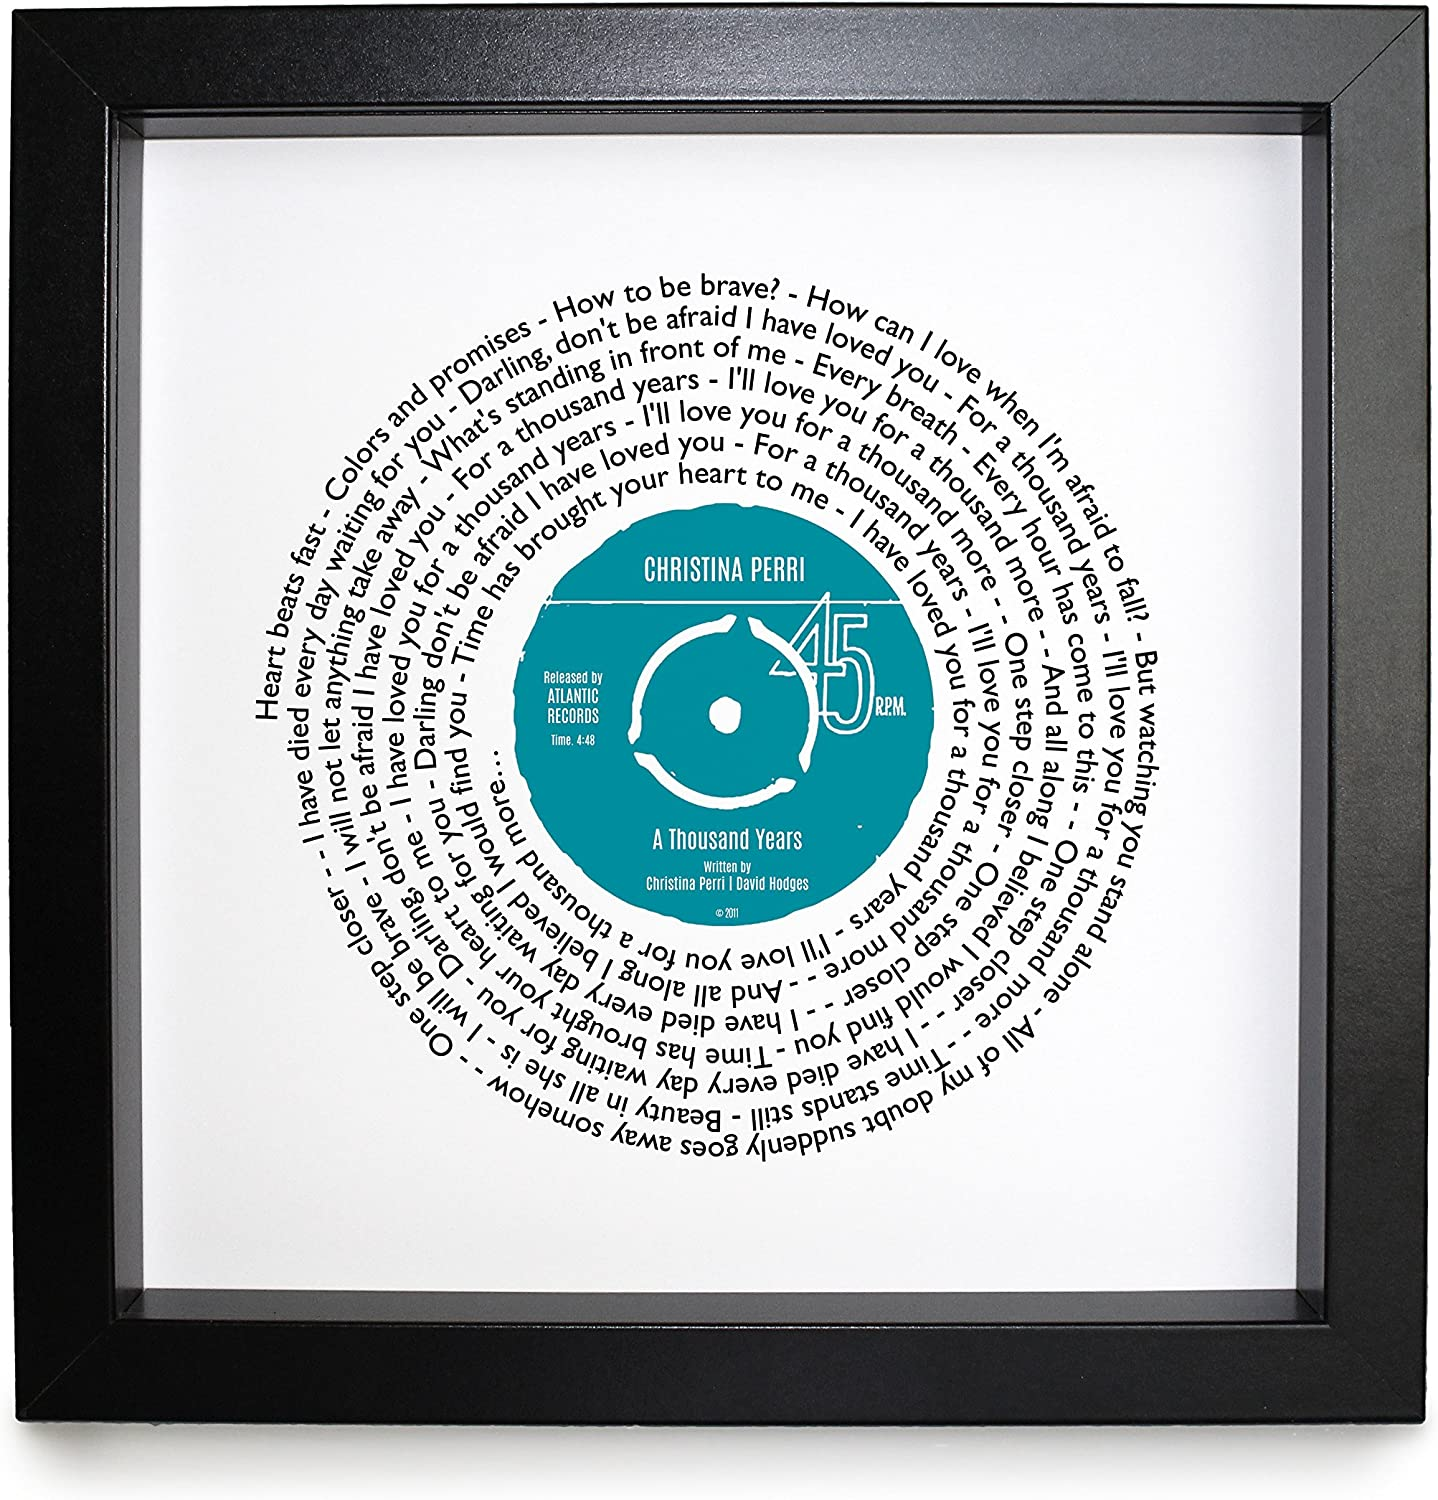 Framed Song Lyrics Print//Vinyl record style print//Valentines day gift//First Dance gift//Wedding gift//Anniversary present **CHOICE OF COLOUR** VA009-A004 Christina Perri A Thousand Years